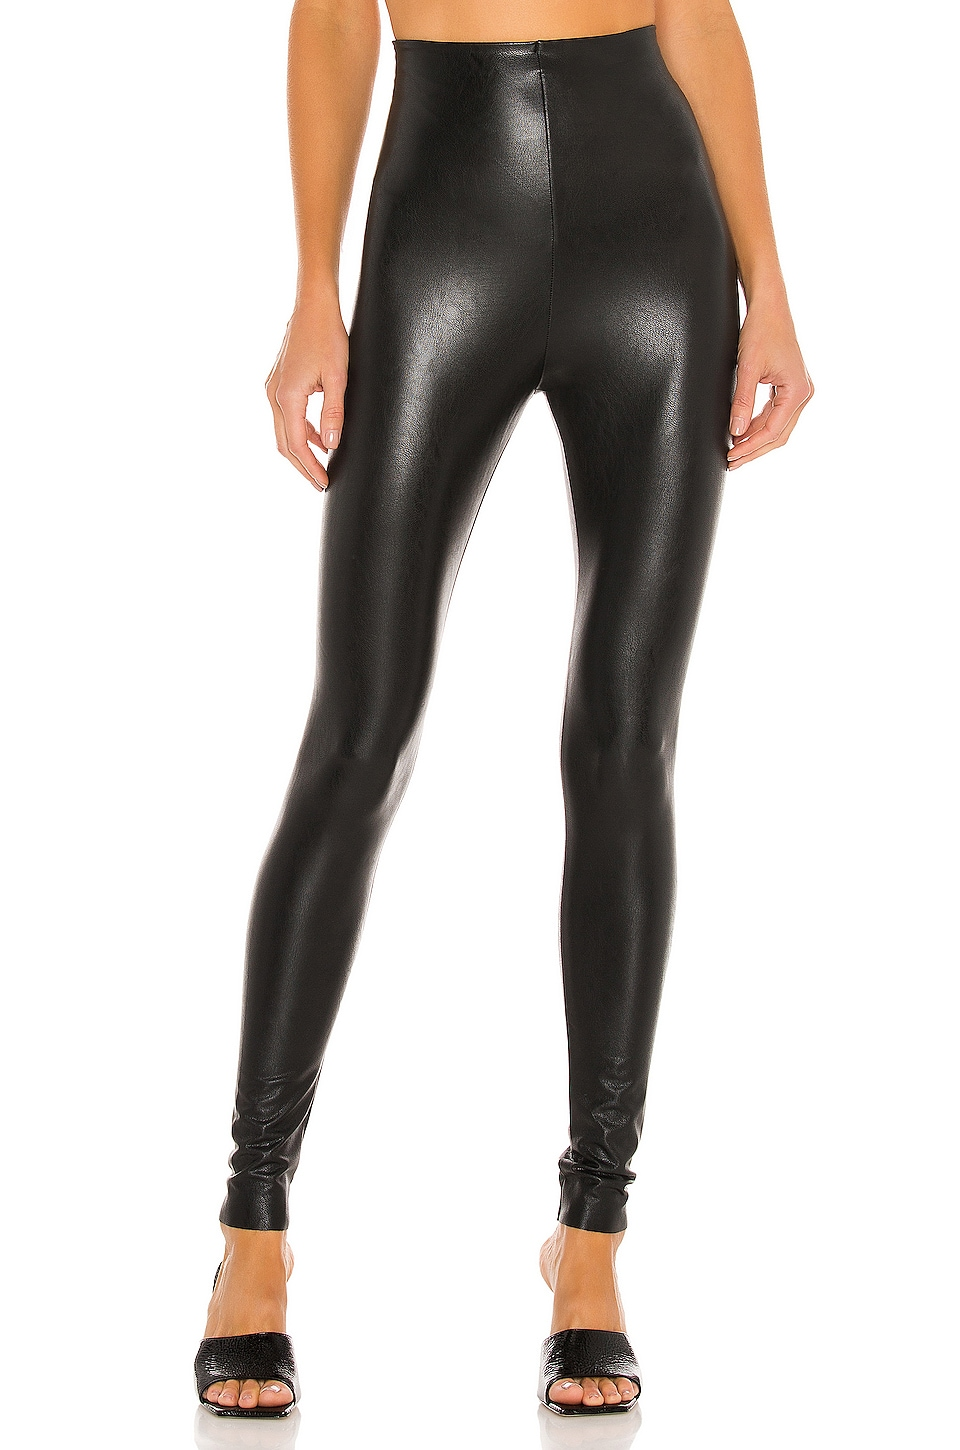 Perfect Control Faux Leather Legging             Commando                                                                                                       CA$ 137.62 7